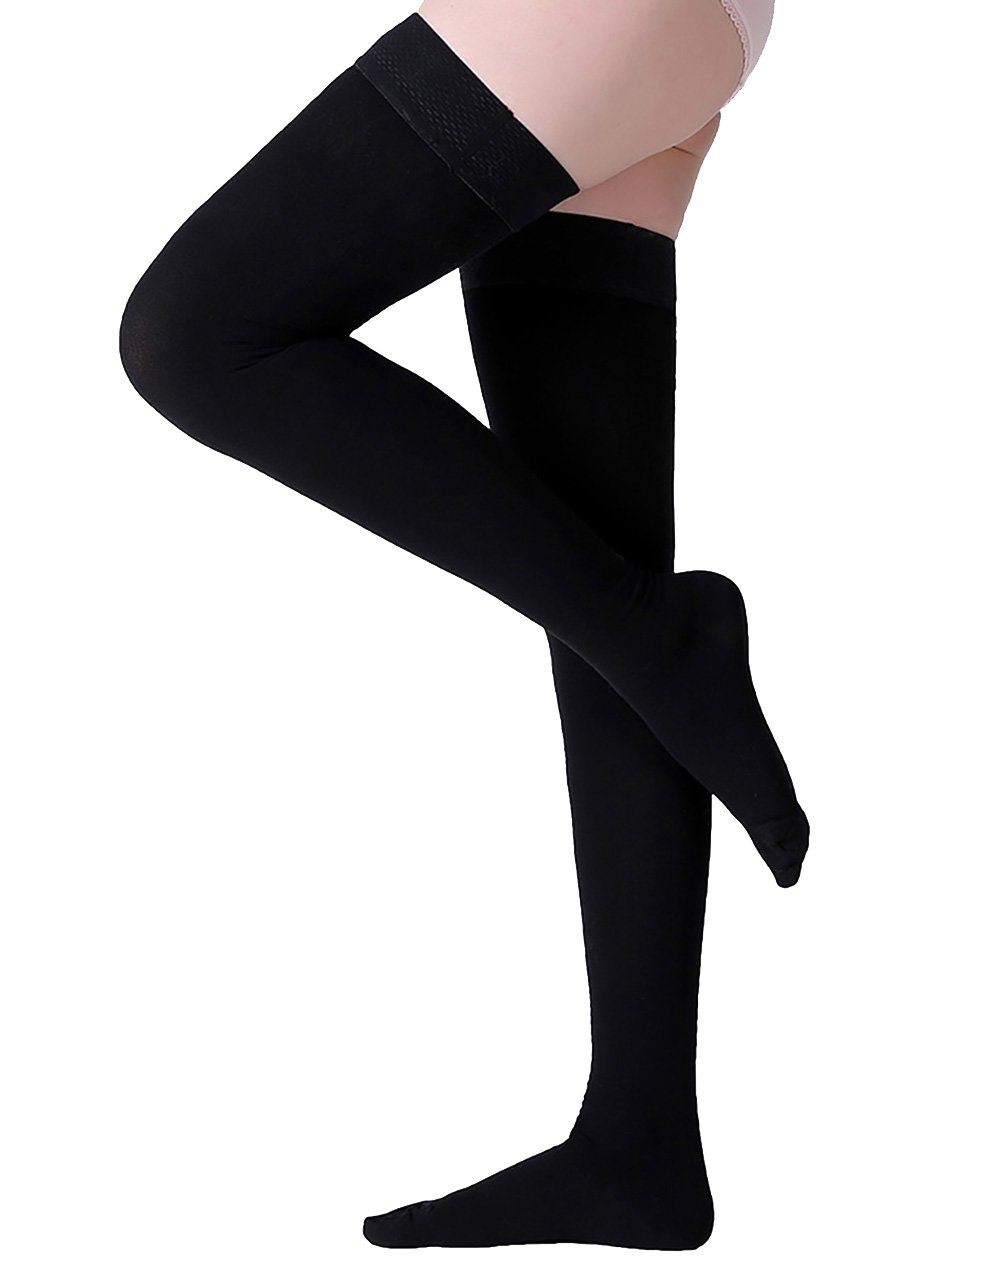 Thigh High Compression Stockings, Closed Toe, Firm Support 20-30 mmHg Gradient Compression Socks with Silicone Band, Opaque, Best for Treatment Swelling, Varicose Veins, Edema, Pregnancy, Black S by MGANG (Image #1)